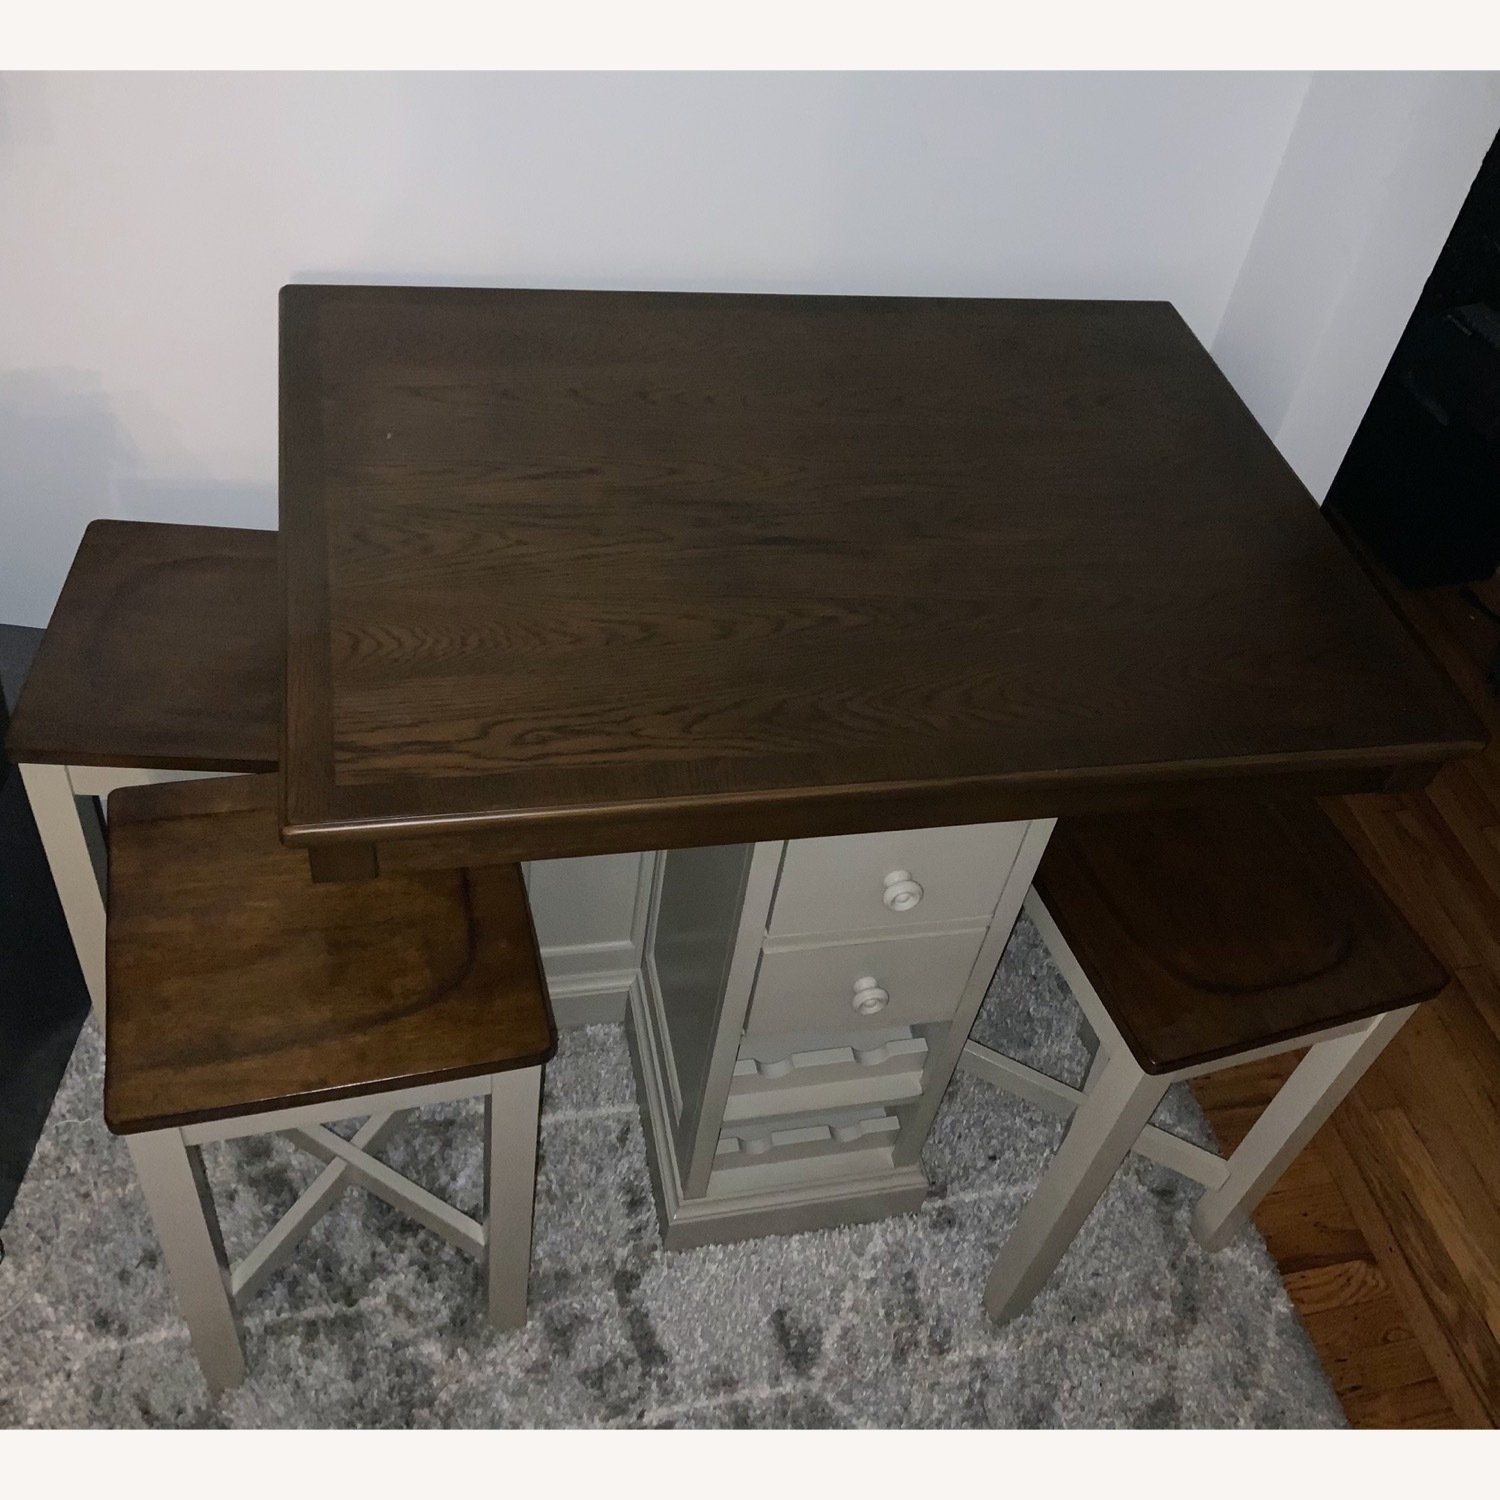 Raymour & Flanigan 4 Seat High Dining Table w/ Storage Space - image-3